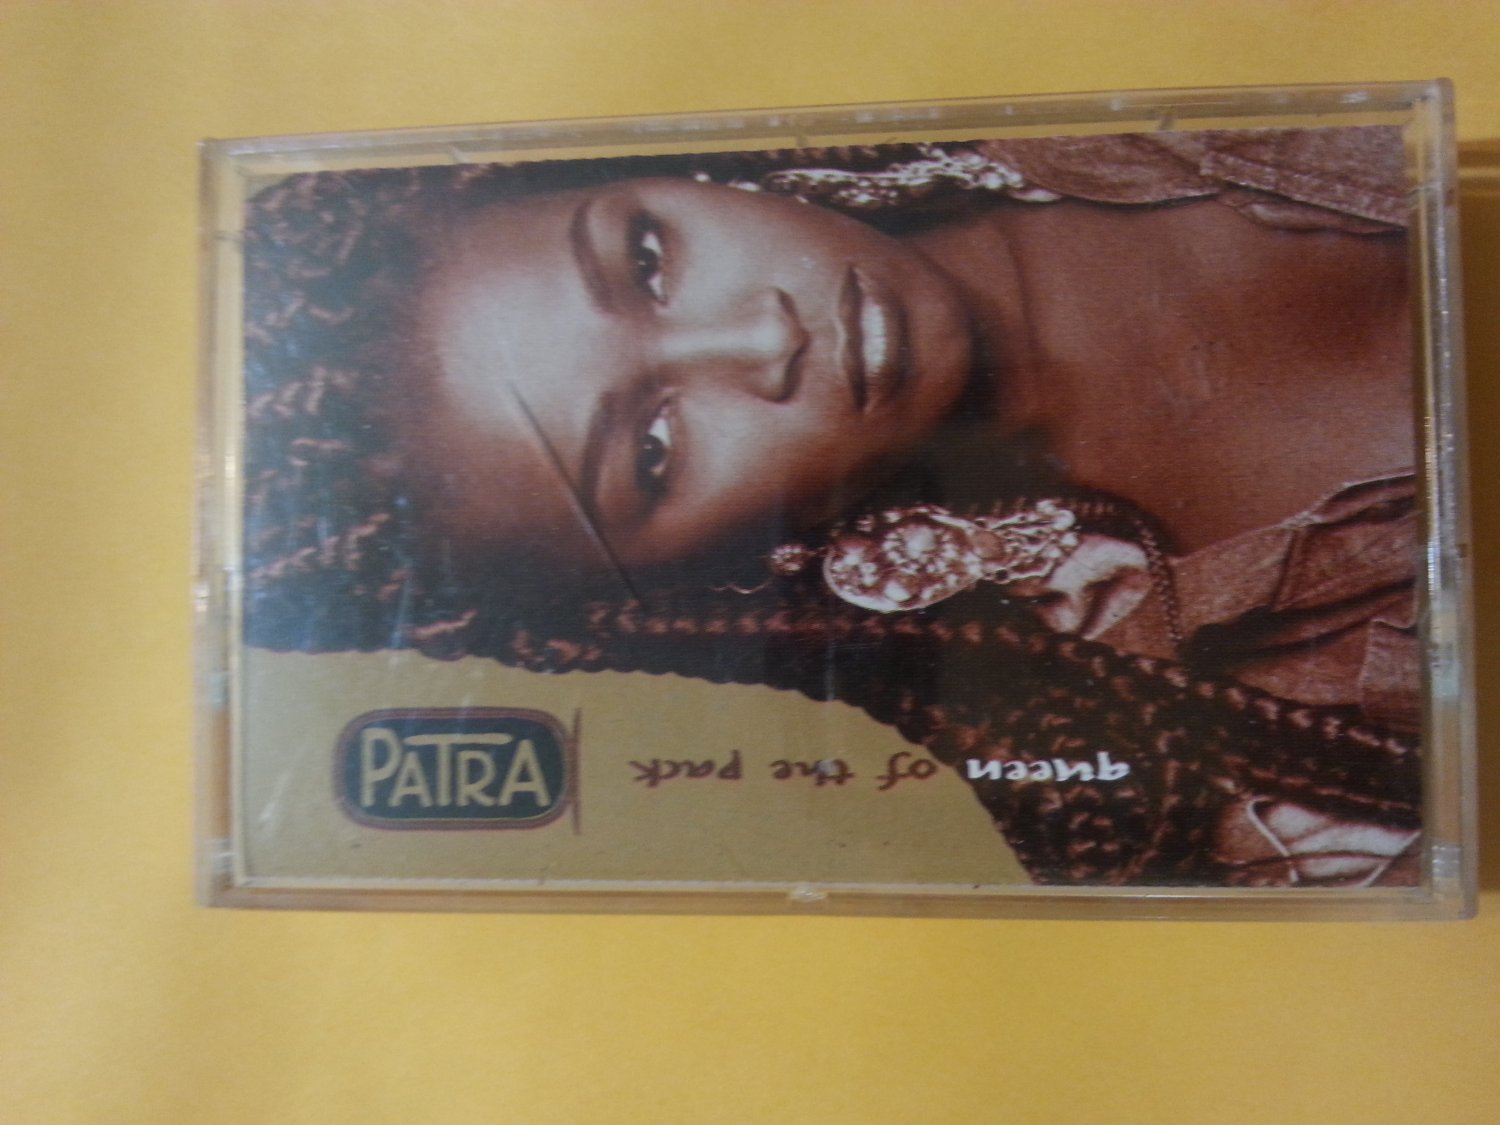 Patra: Queen of the Pack  Audio Cassette 1993